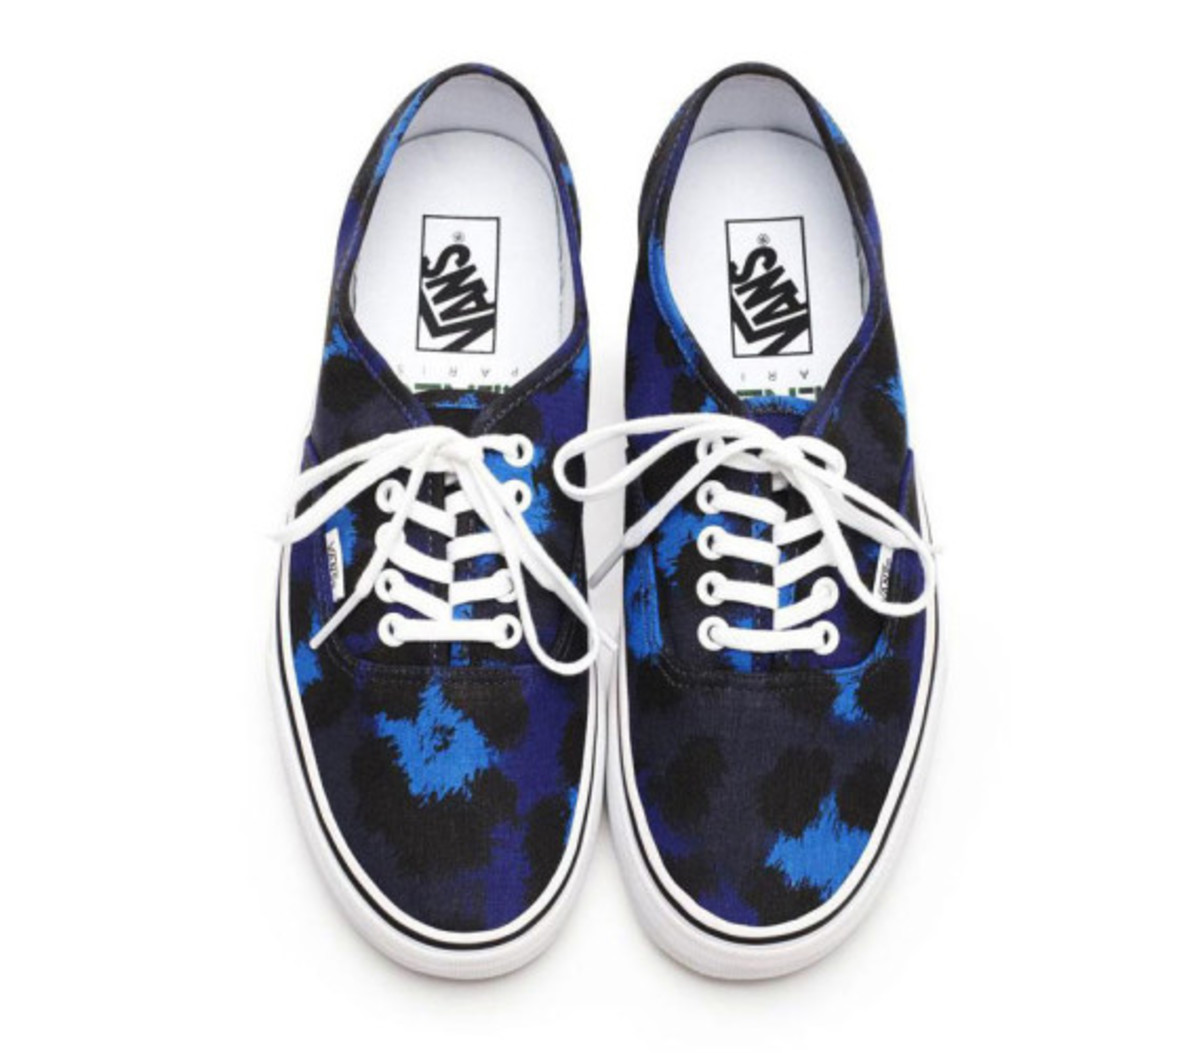 kenzo-vans-spring-summer-2013-capsule-collection-02